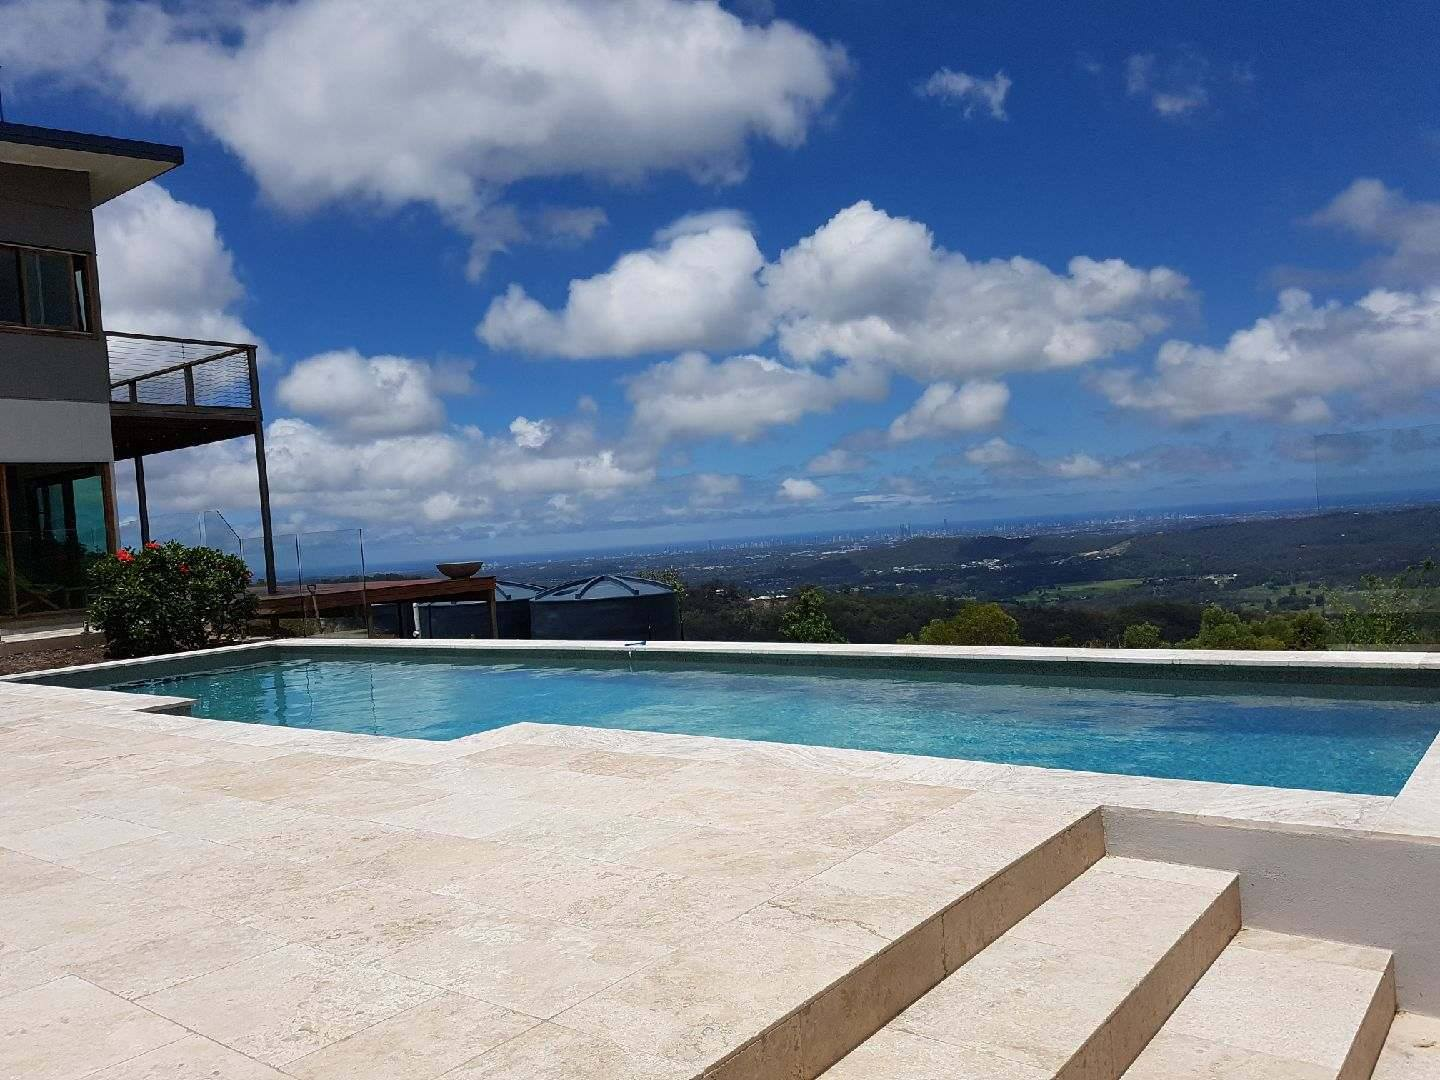 Concrete Pool Gold Coast 2 - Cozy Pools & Spas